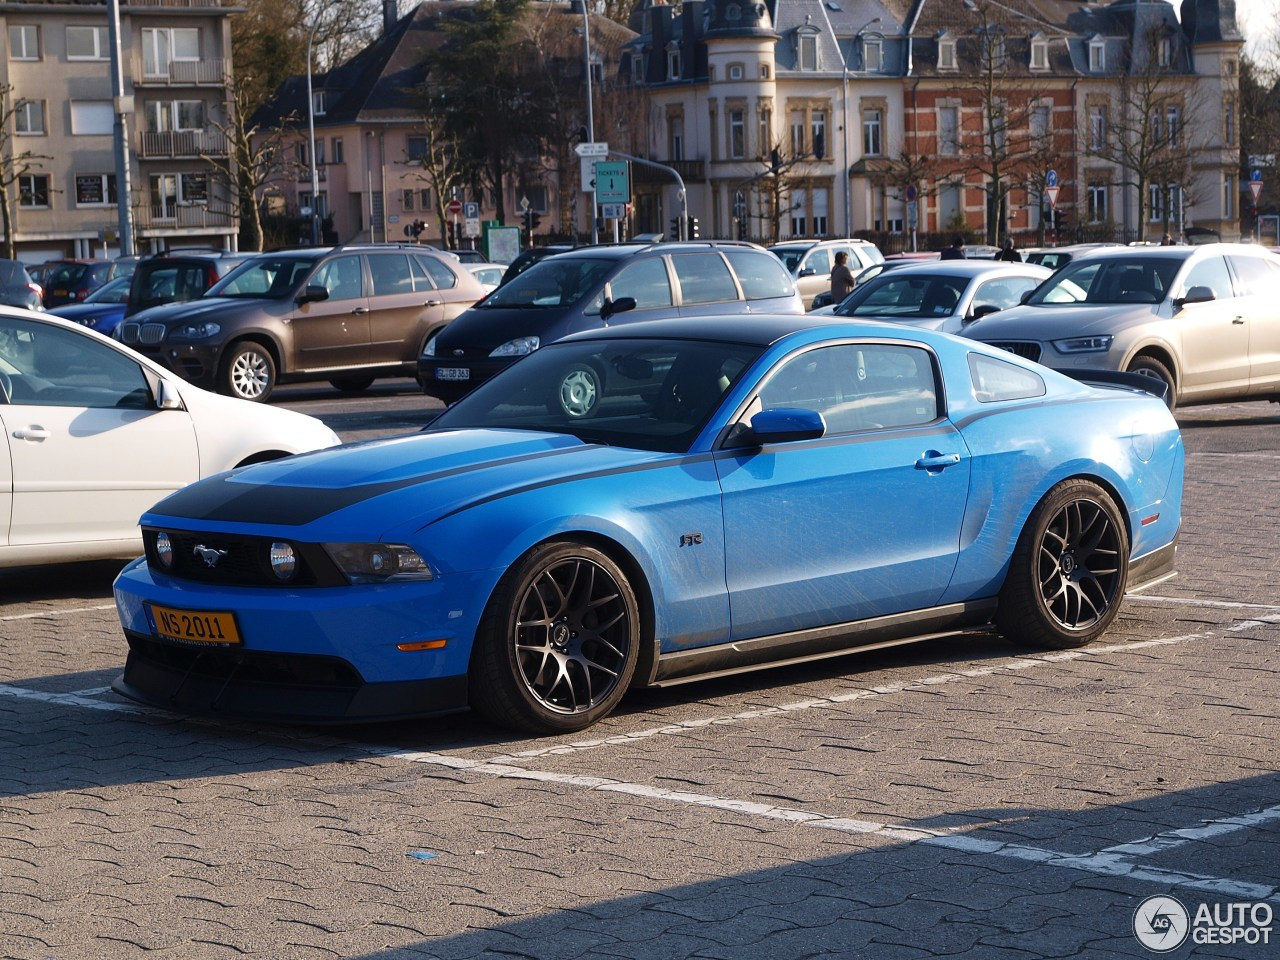 Ford Mustang Rtr 10 March 2013 Autogespot